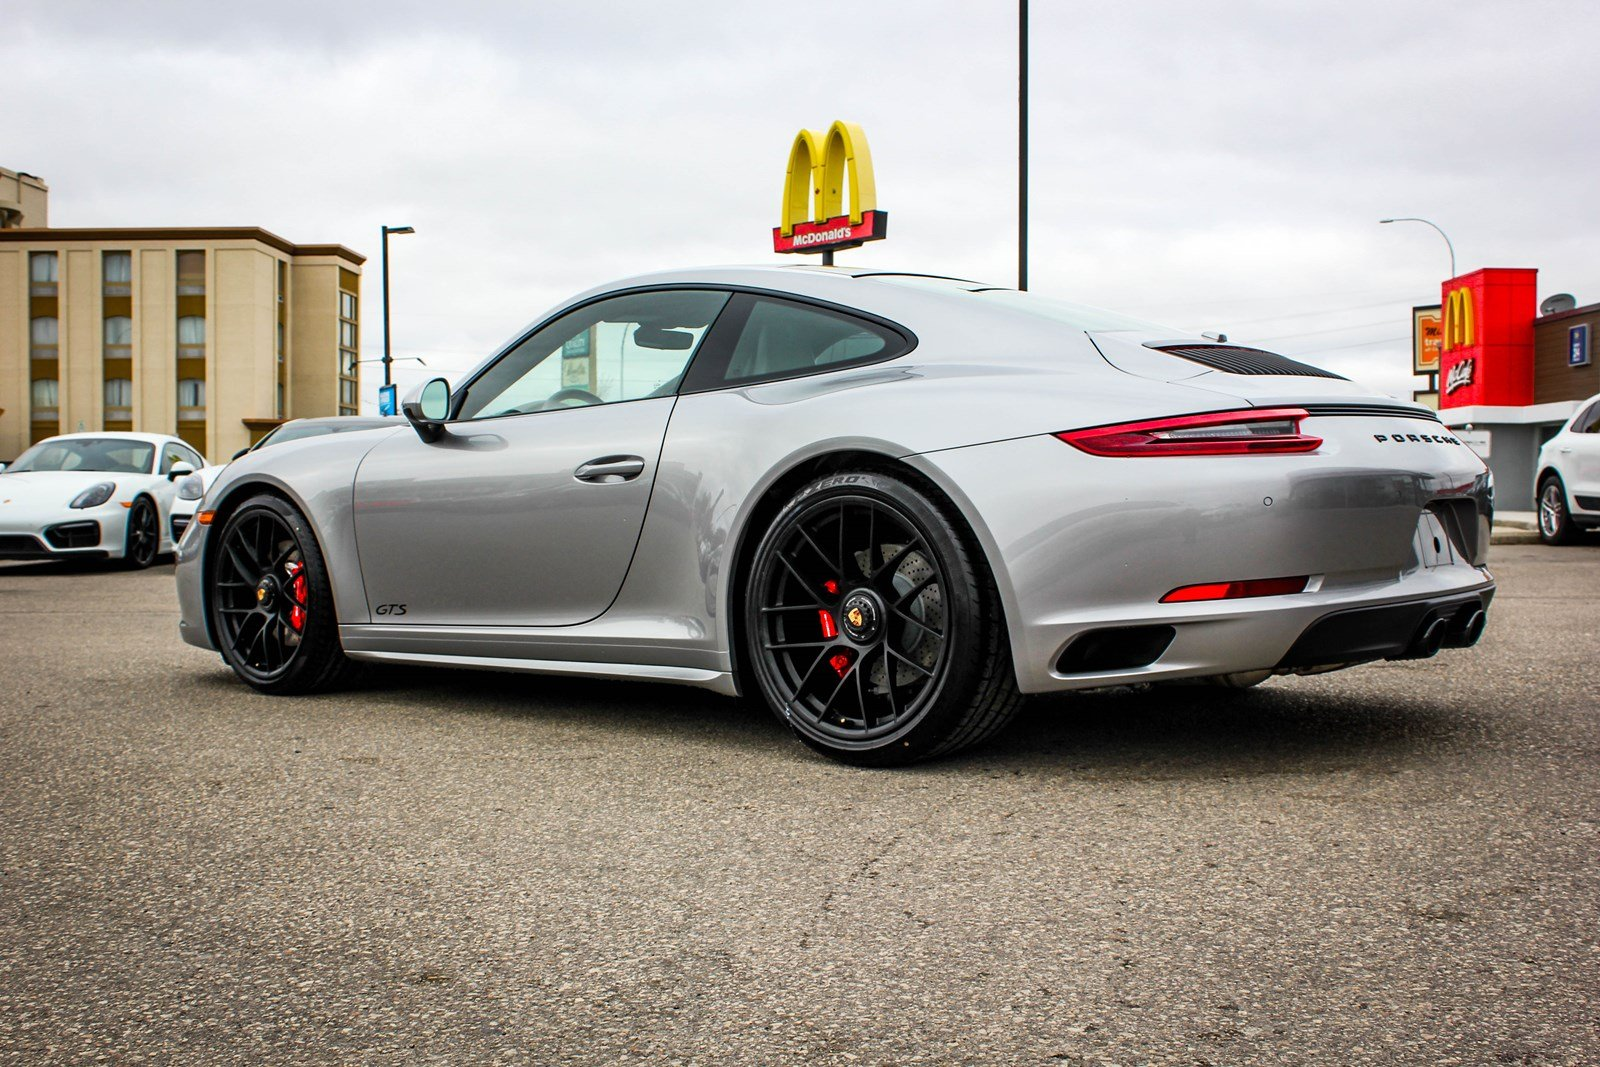 new 2019 porsche 911 carrera gts 2dr car in winnipeg #219147